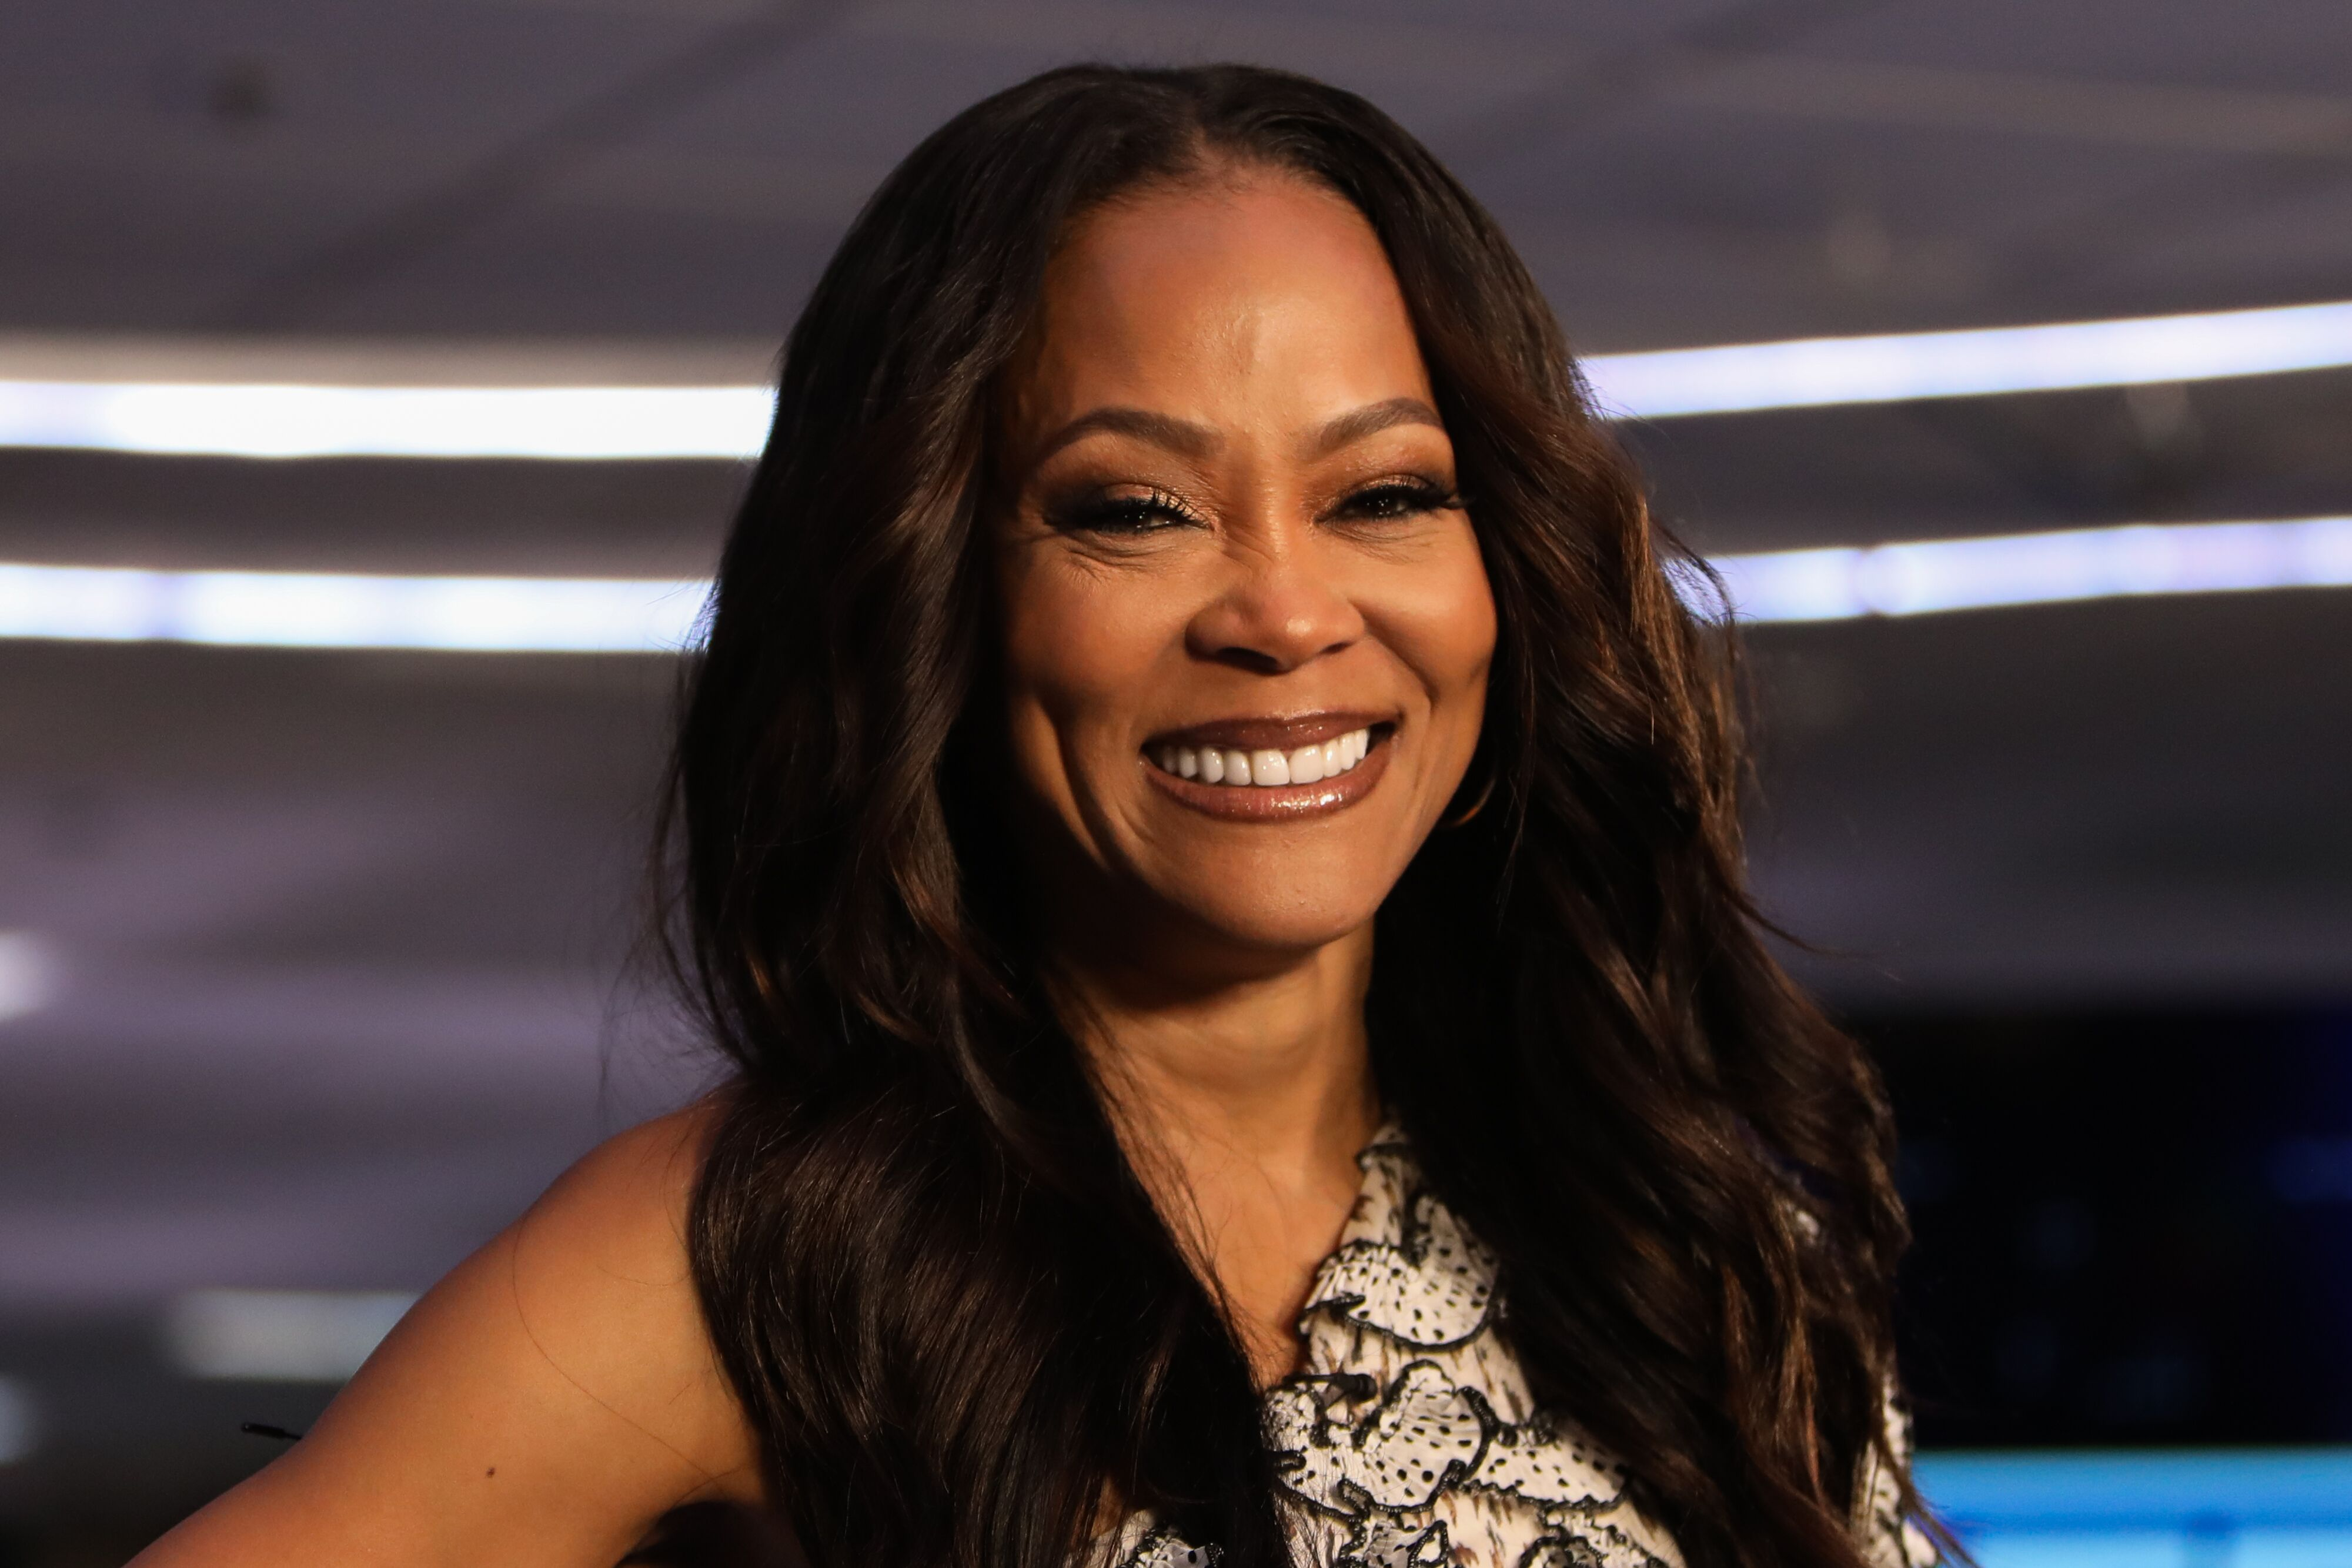 A portrait of Robin Givens attending a public event   Source: Getty Images/GlobalImagesUkraine